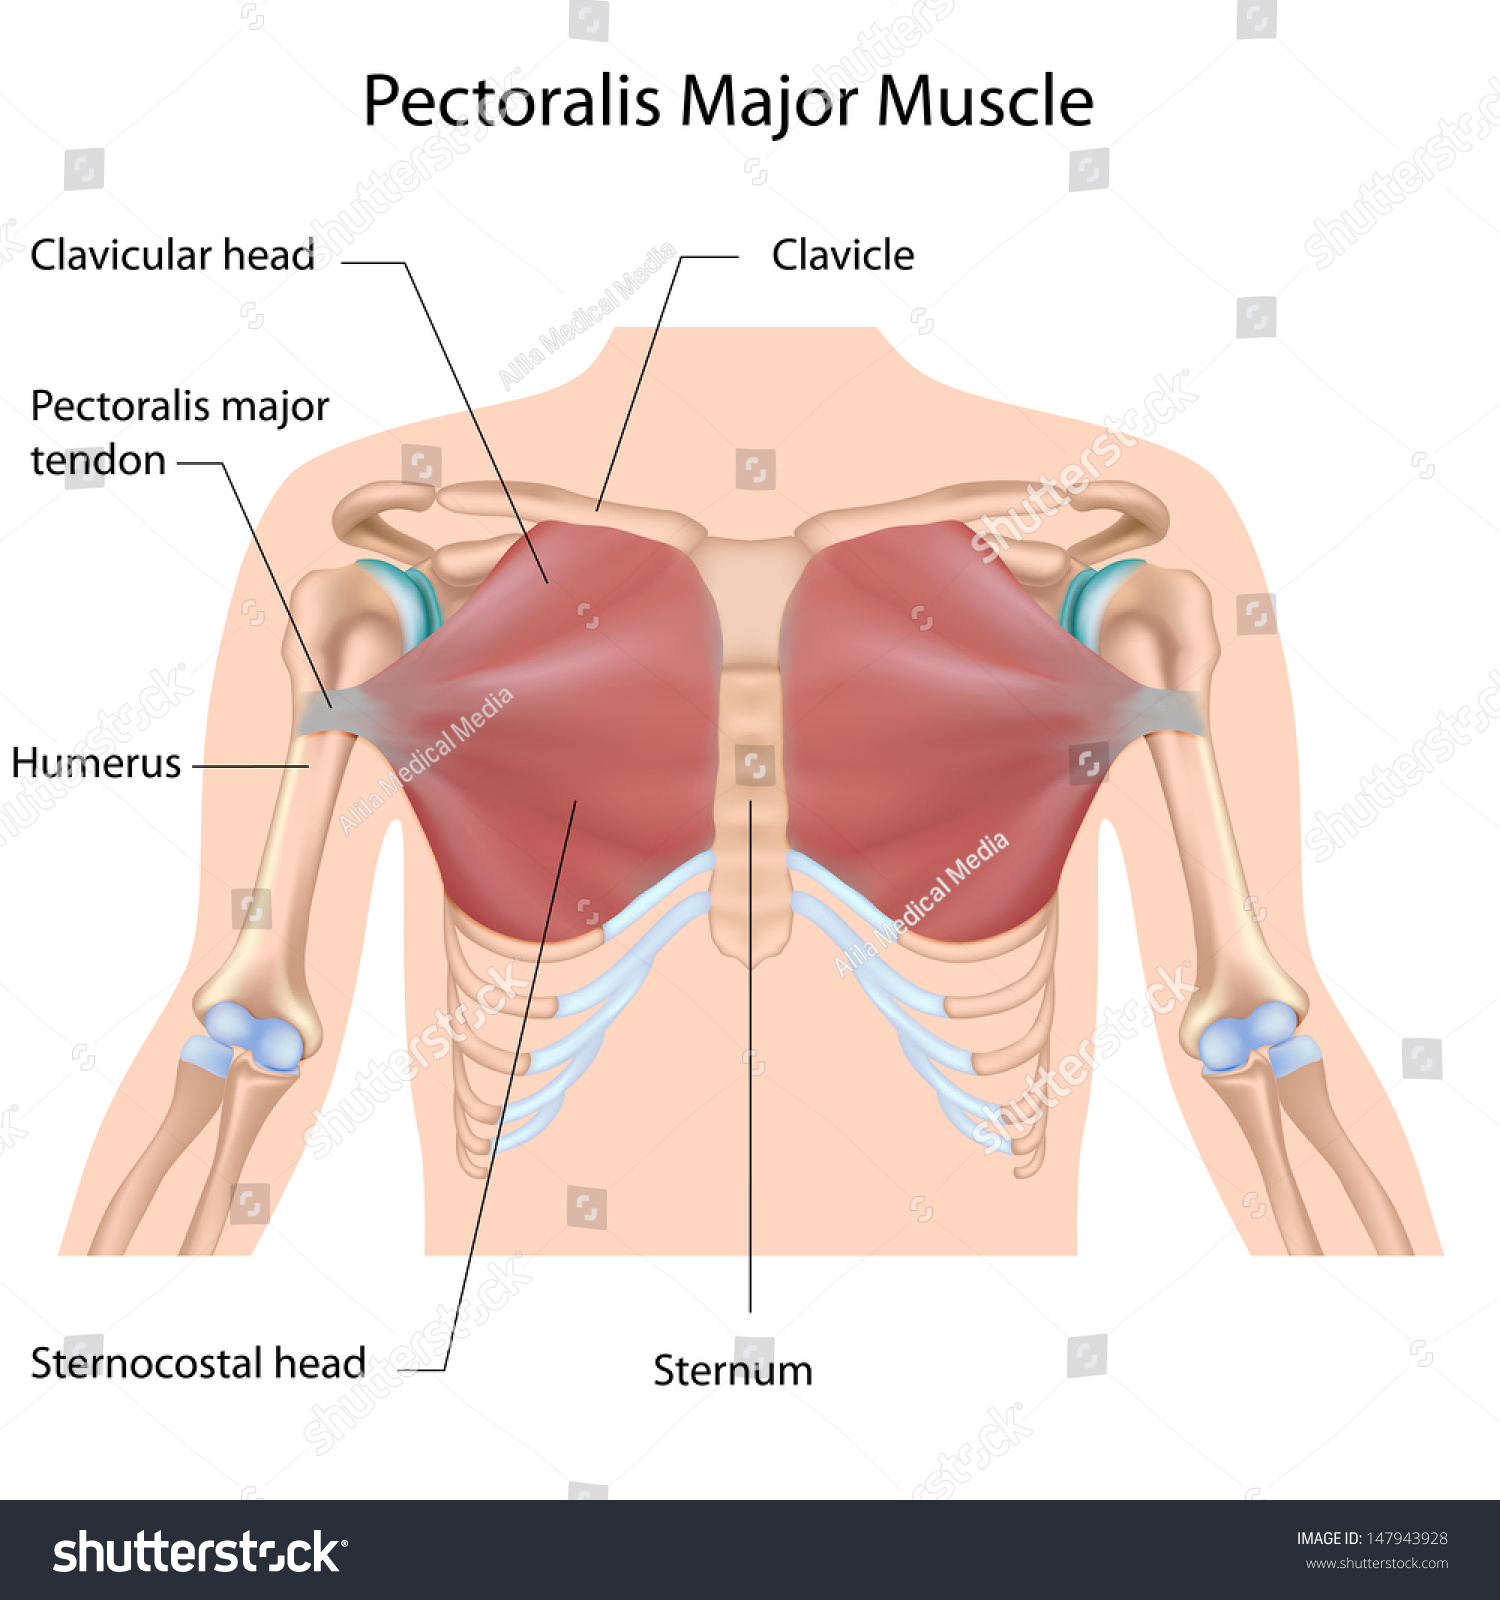 Where is the pectoralis major located?